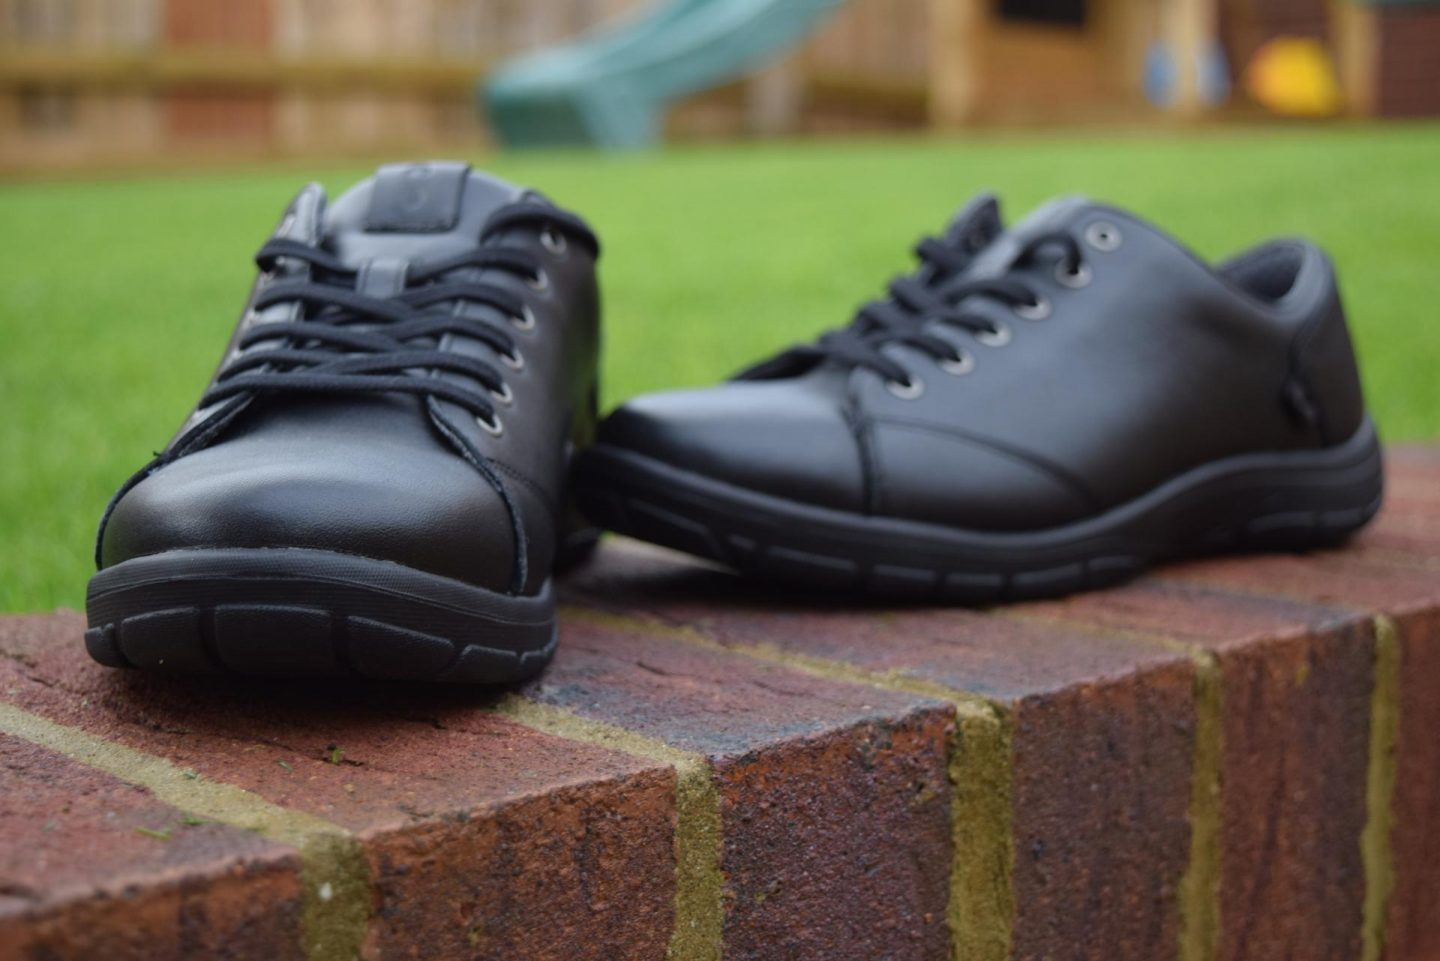 Review | Strive Weston shoes